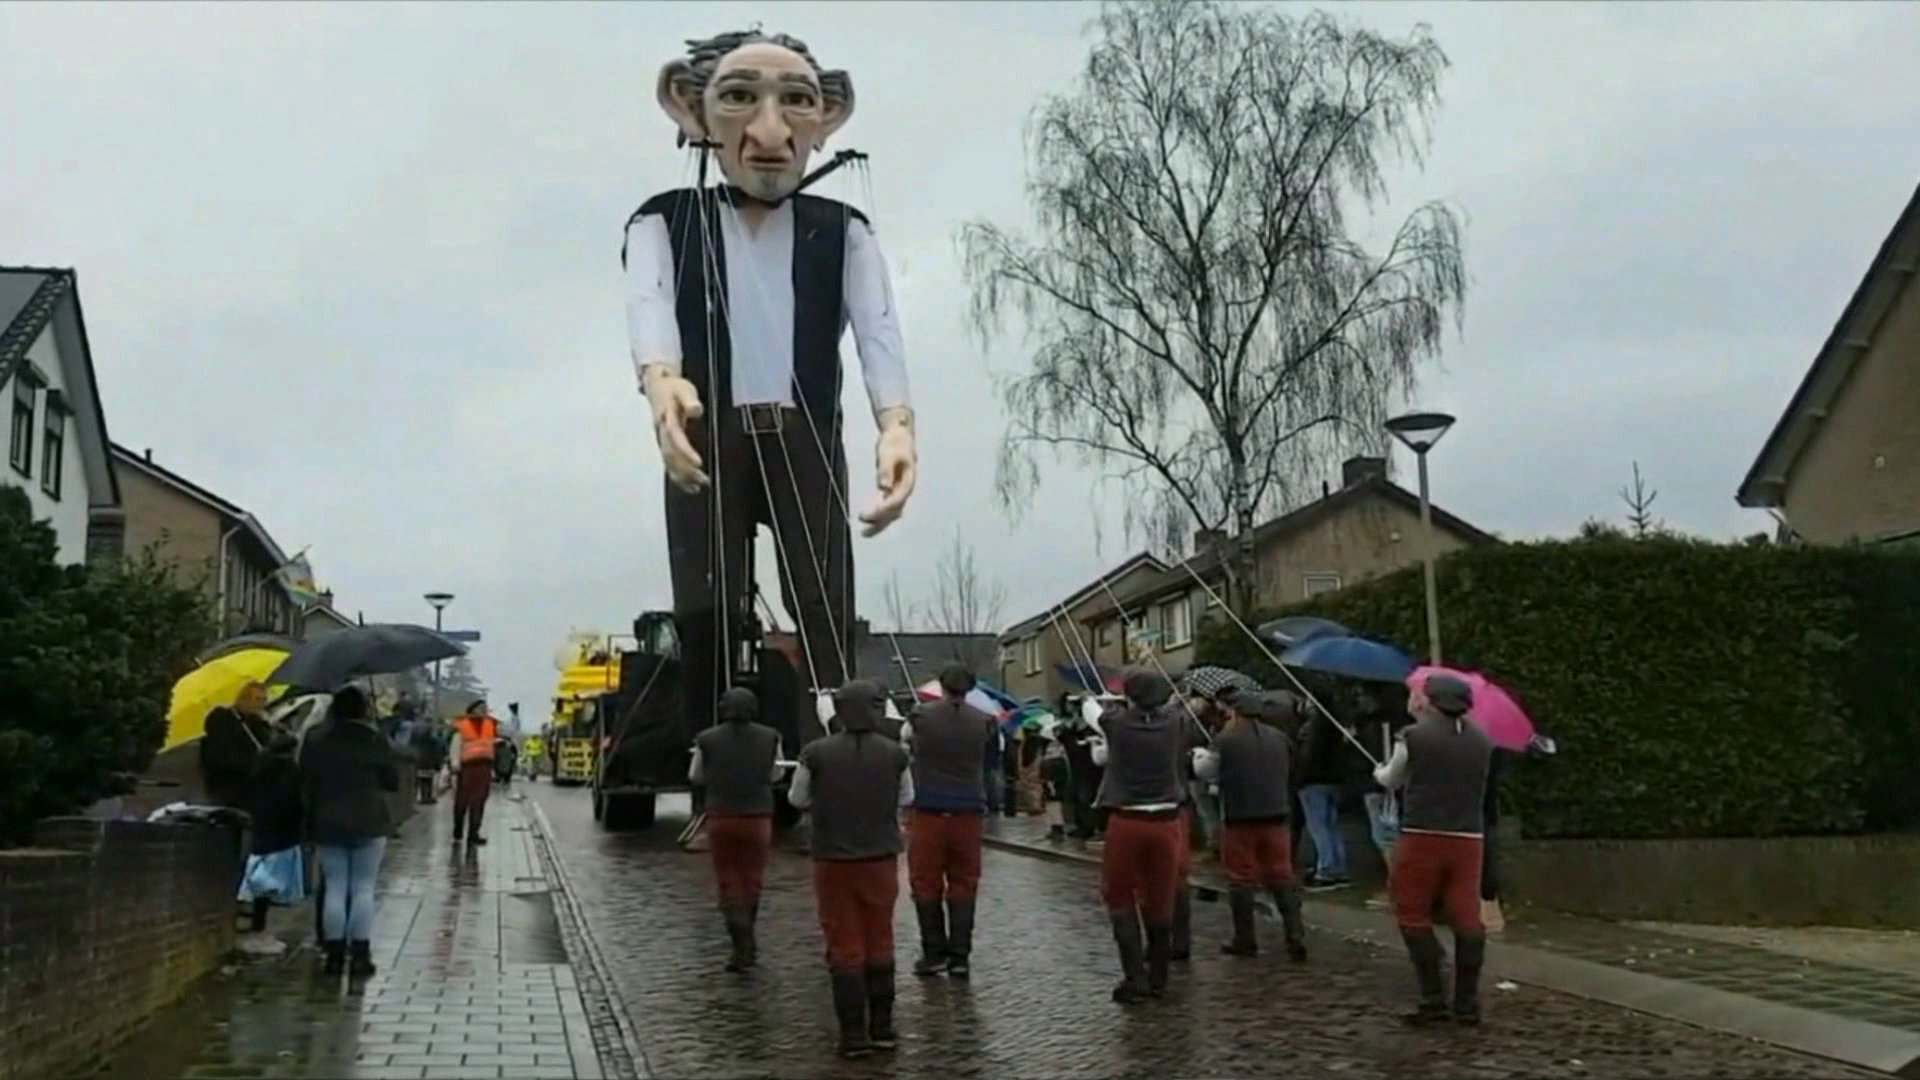 Aflevering 5 Documentaire Ut Gruusbèks Carnaval